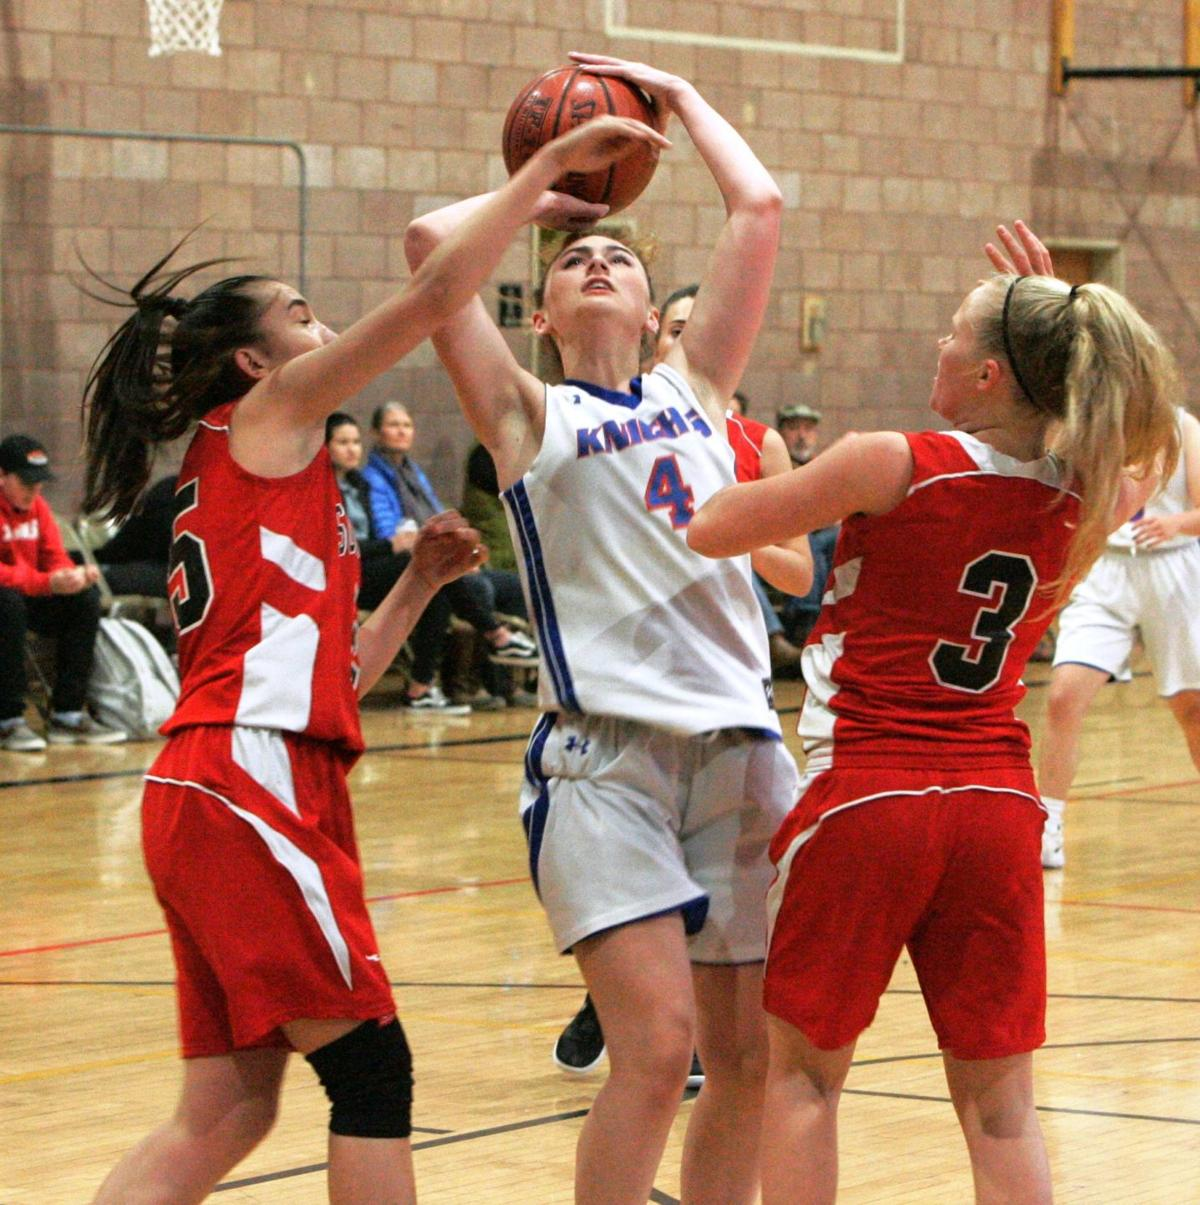 Napa Christian girls basketball